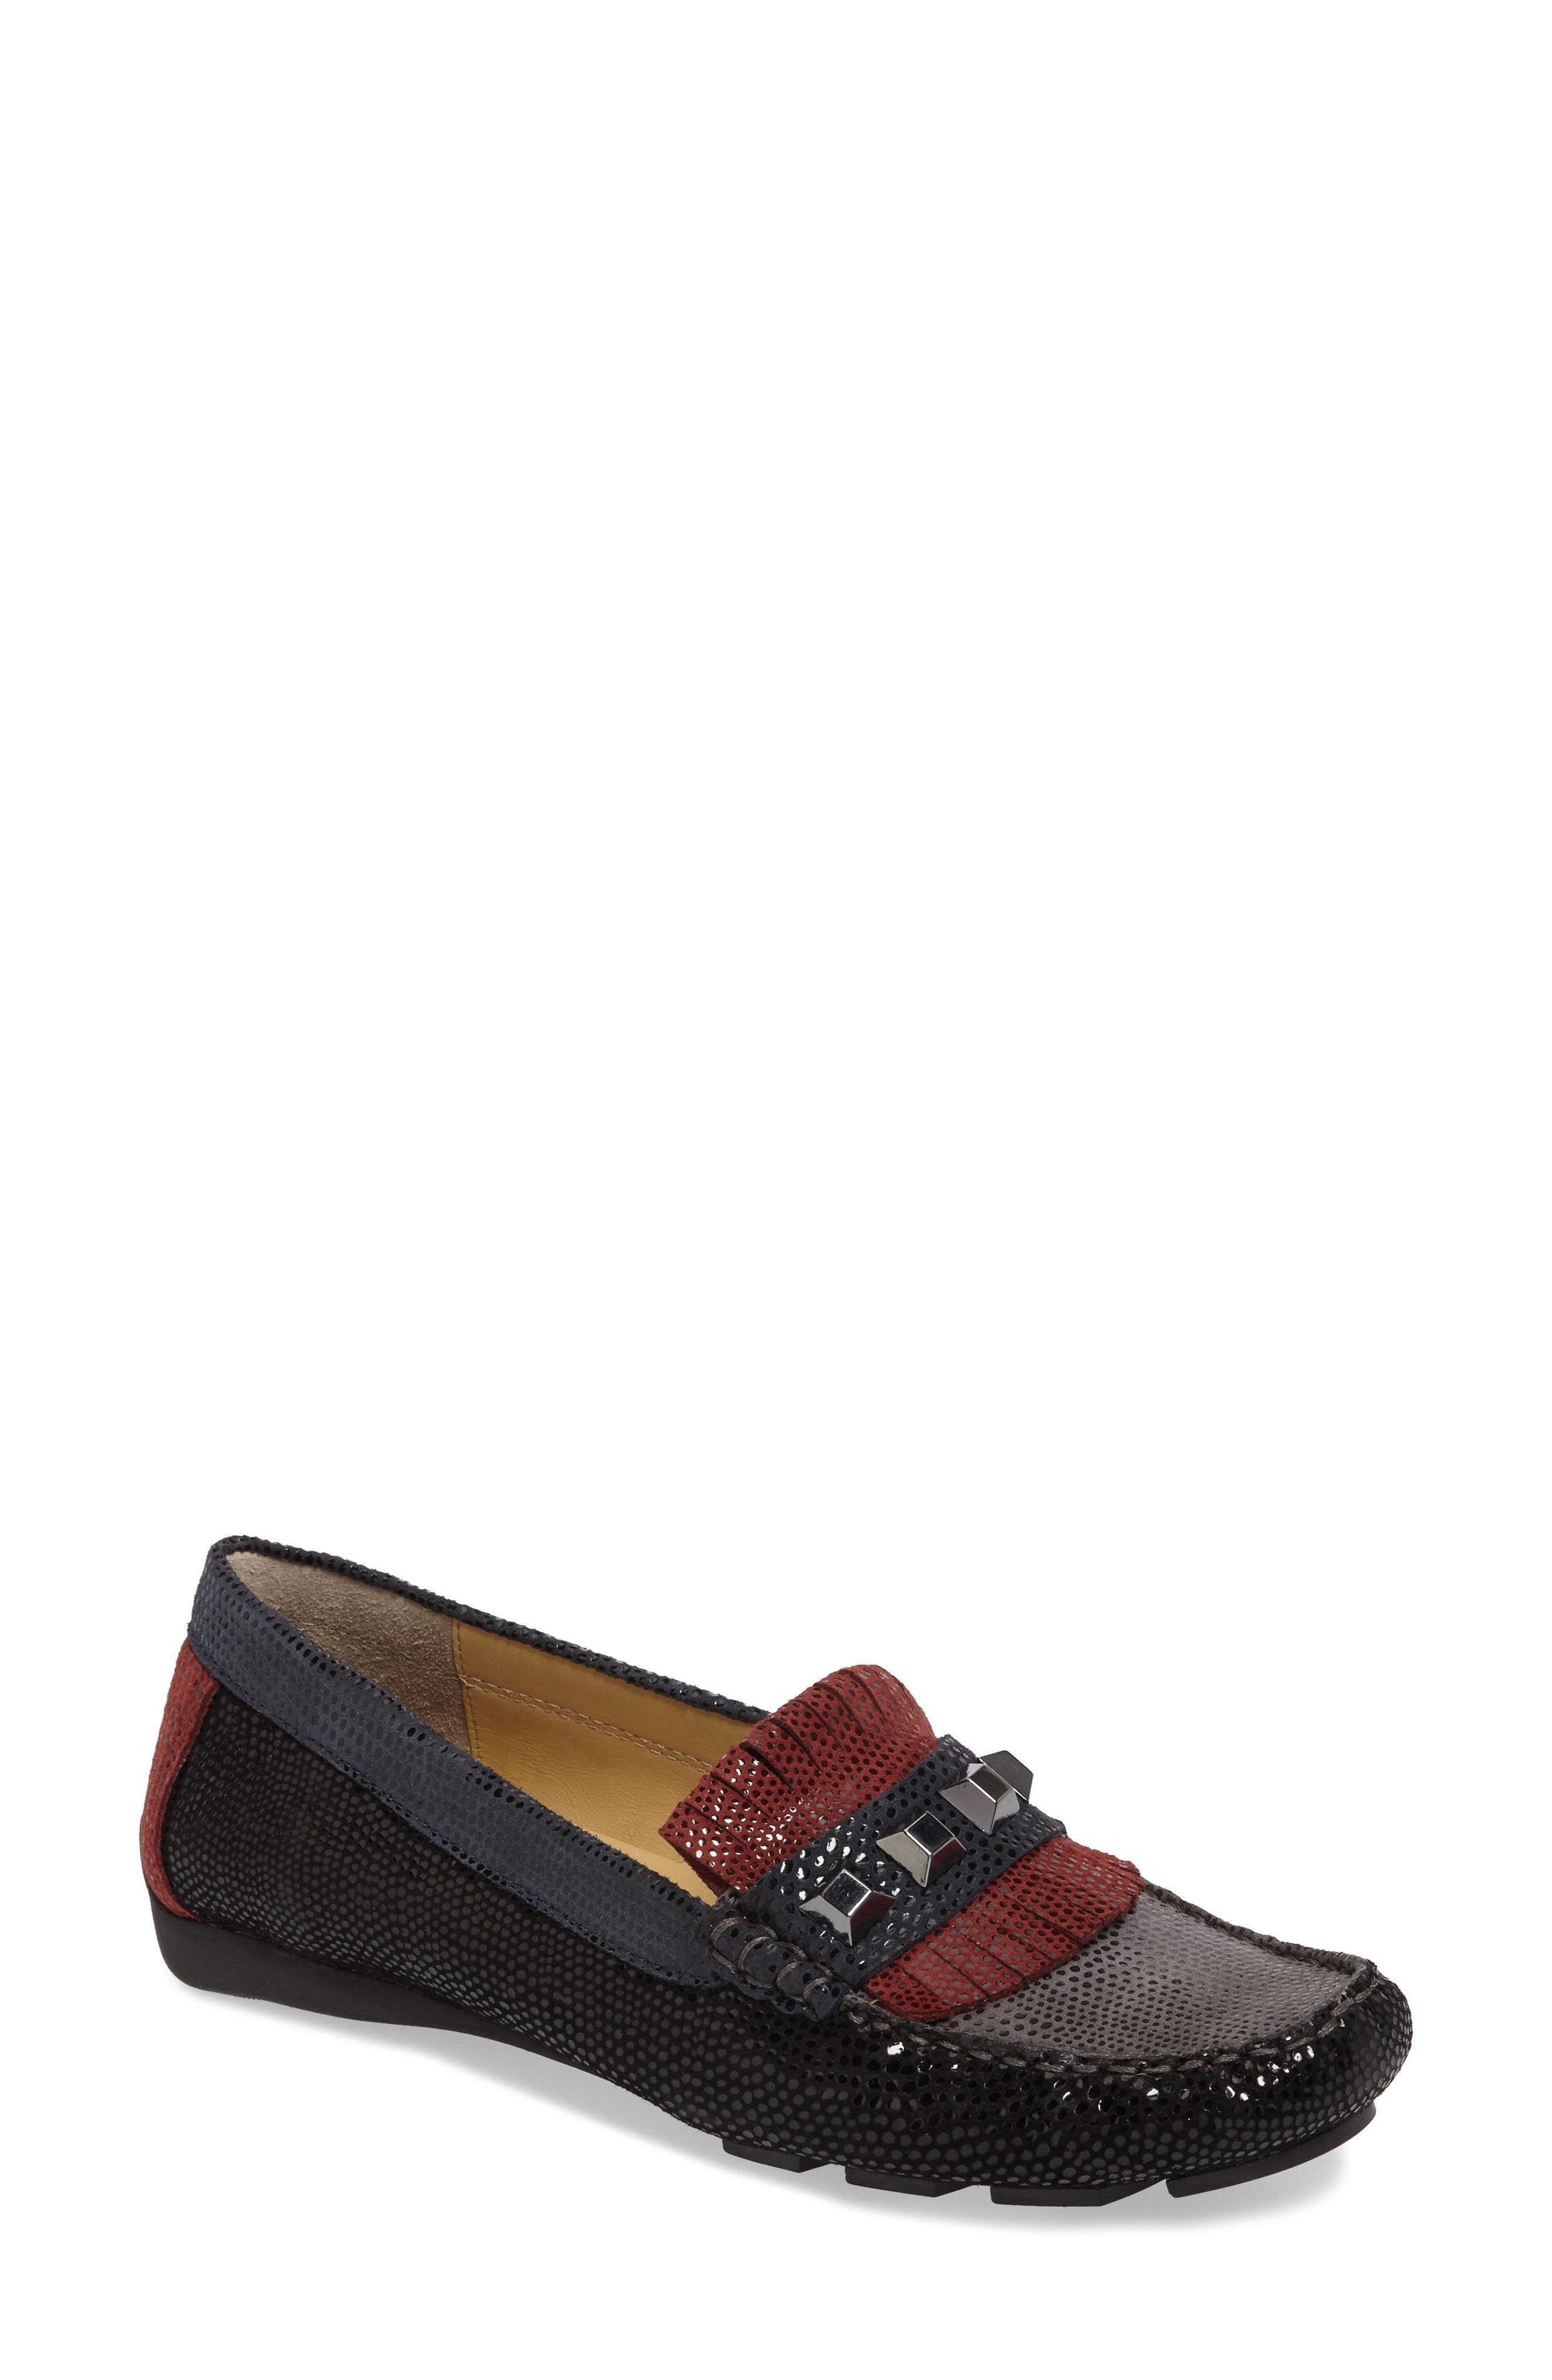 Rumble Loafer,                         Main,                         color, 001